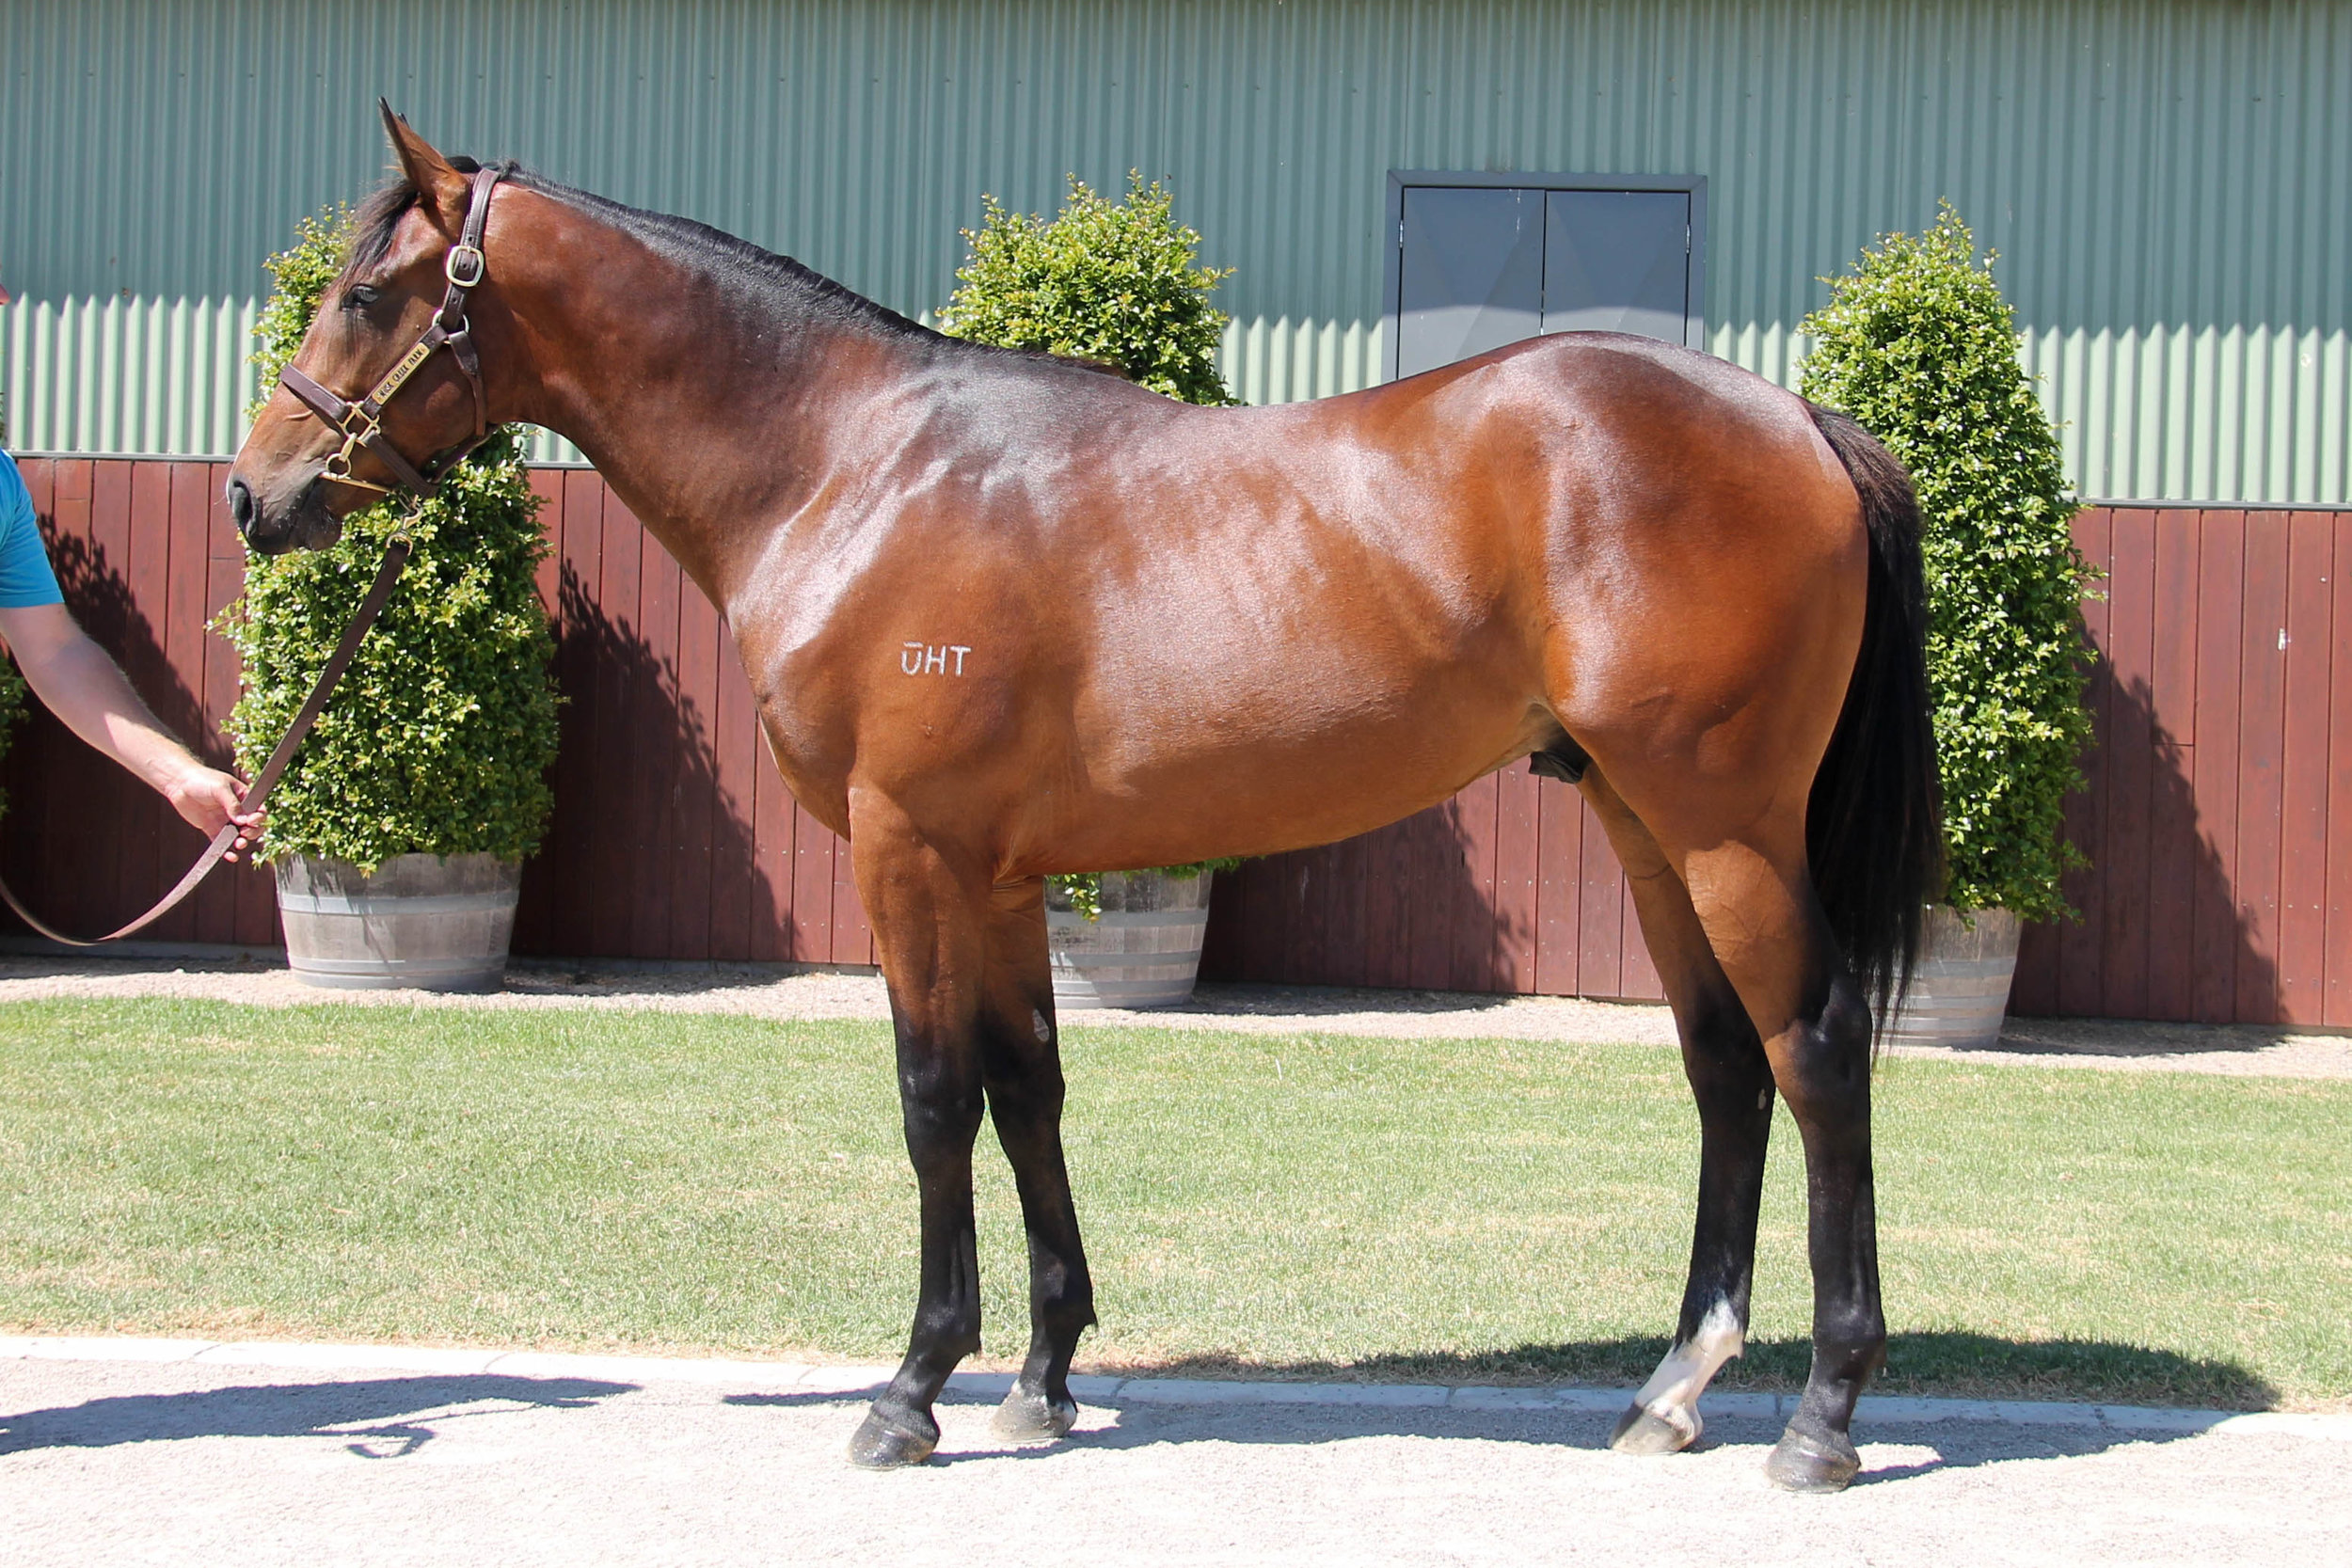 Lot 162 - Epaulette x Bosphoruscence 17 Colt - Sold to Triple Crown Syndications for $80,000